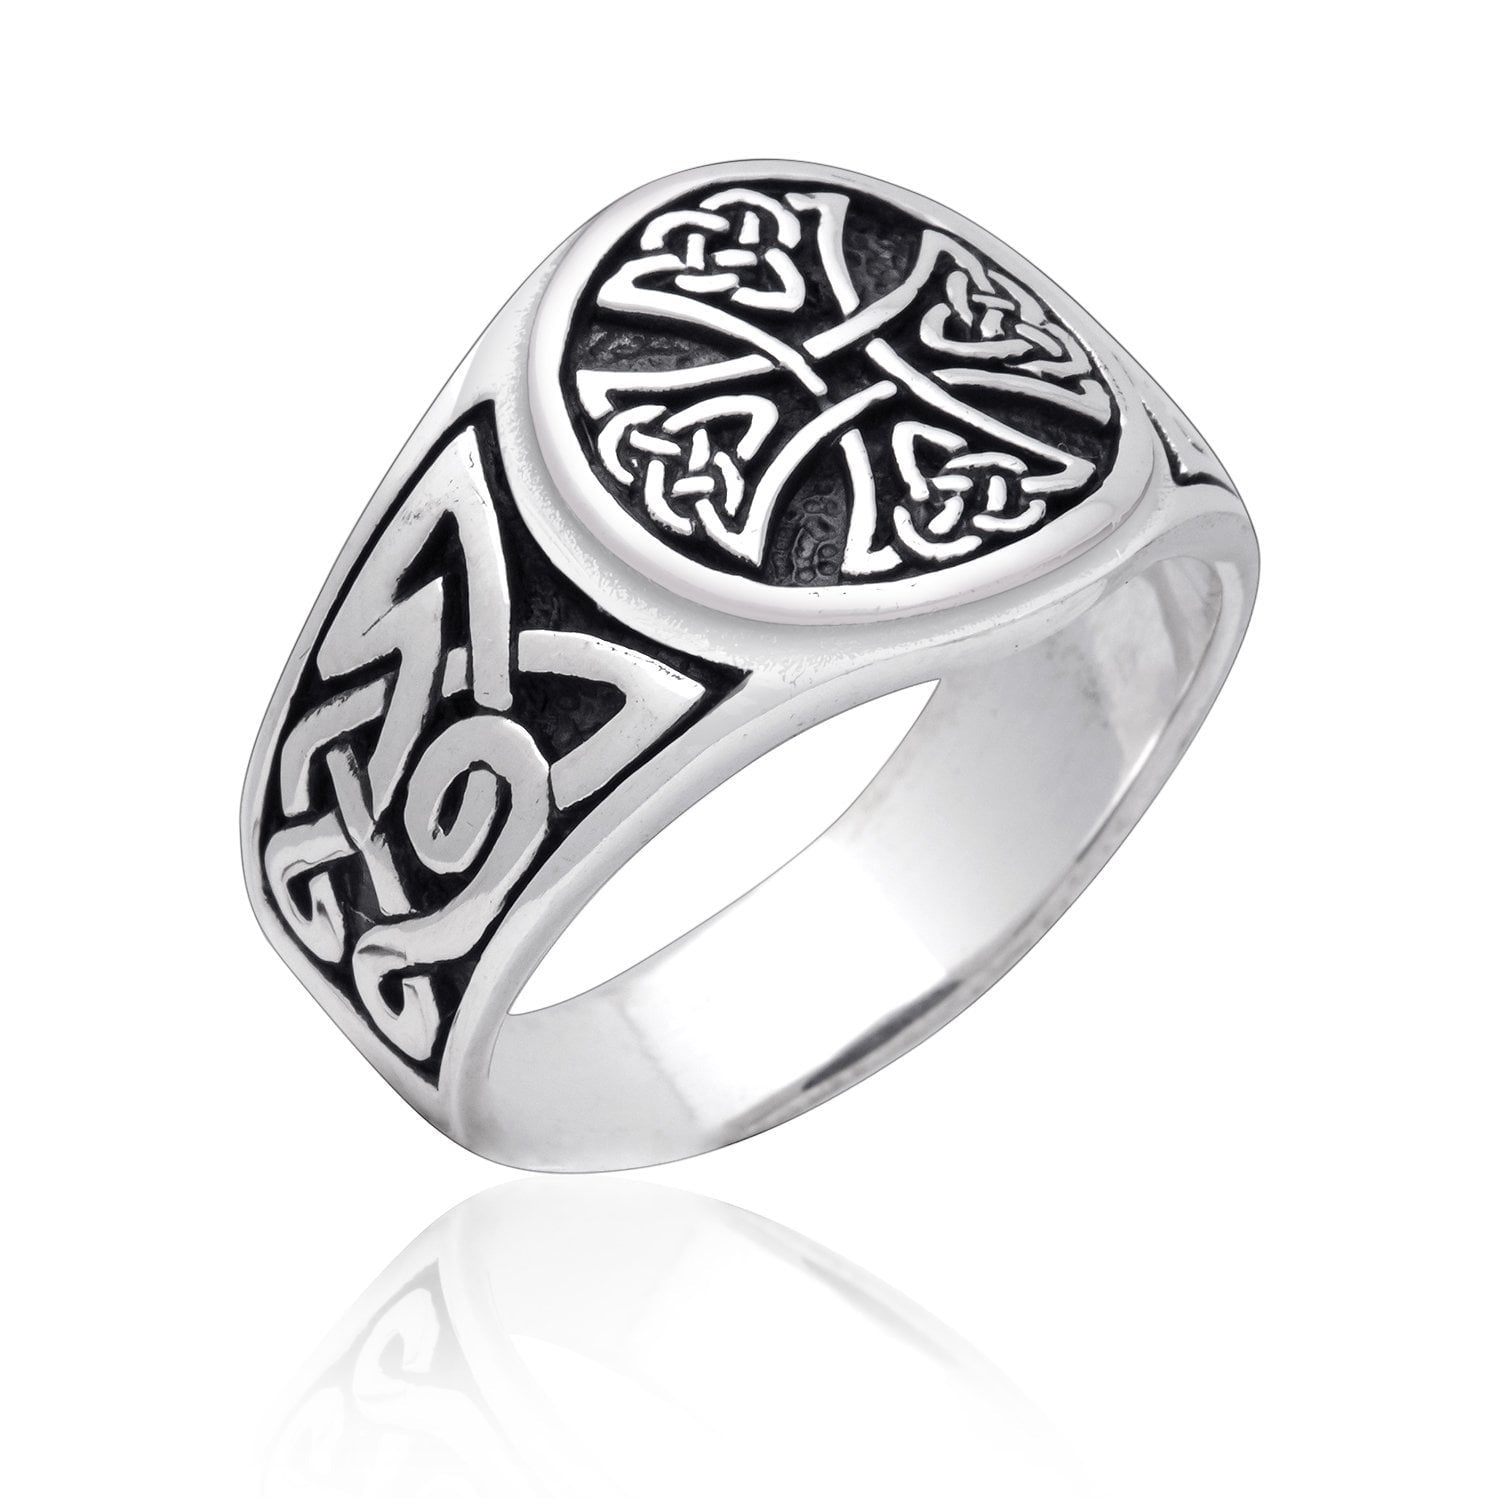 silver sterling ring wedding il cr band celtic size irish listing fullxfull owl mens knot rings custom jewelry